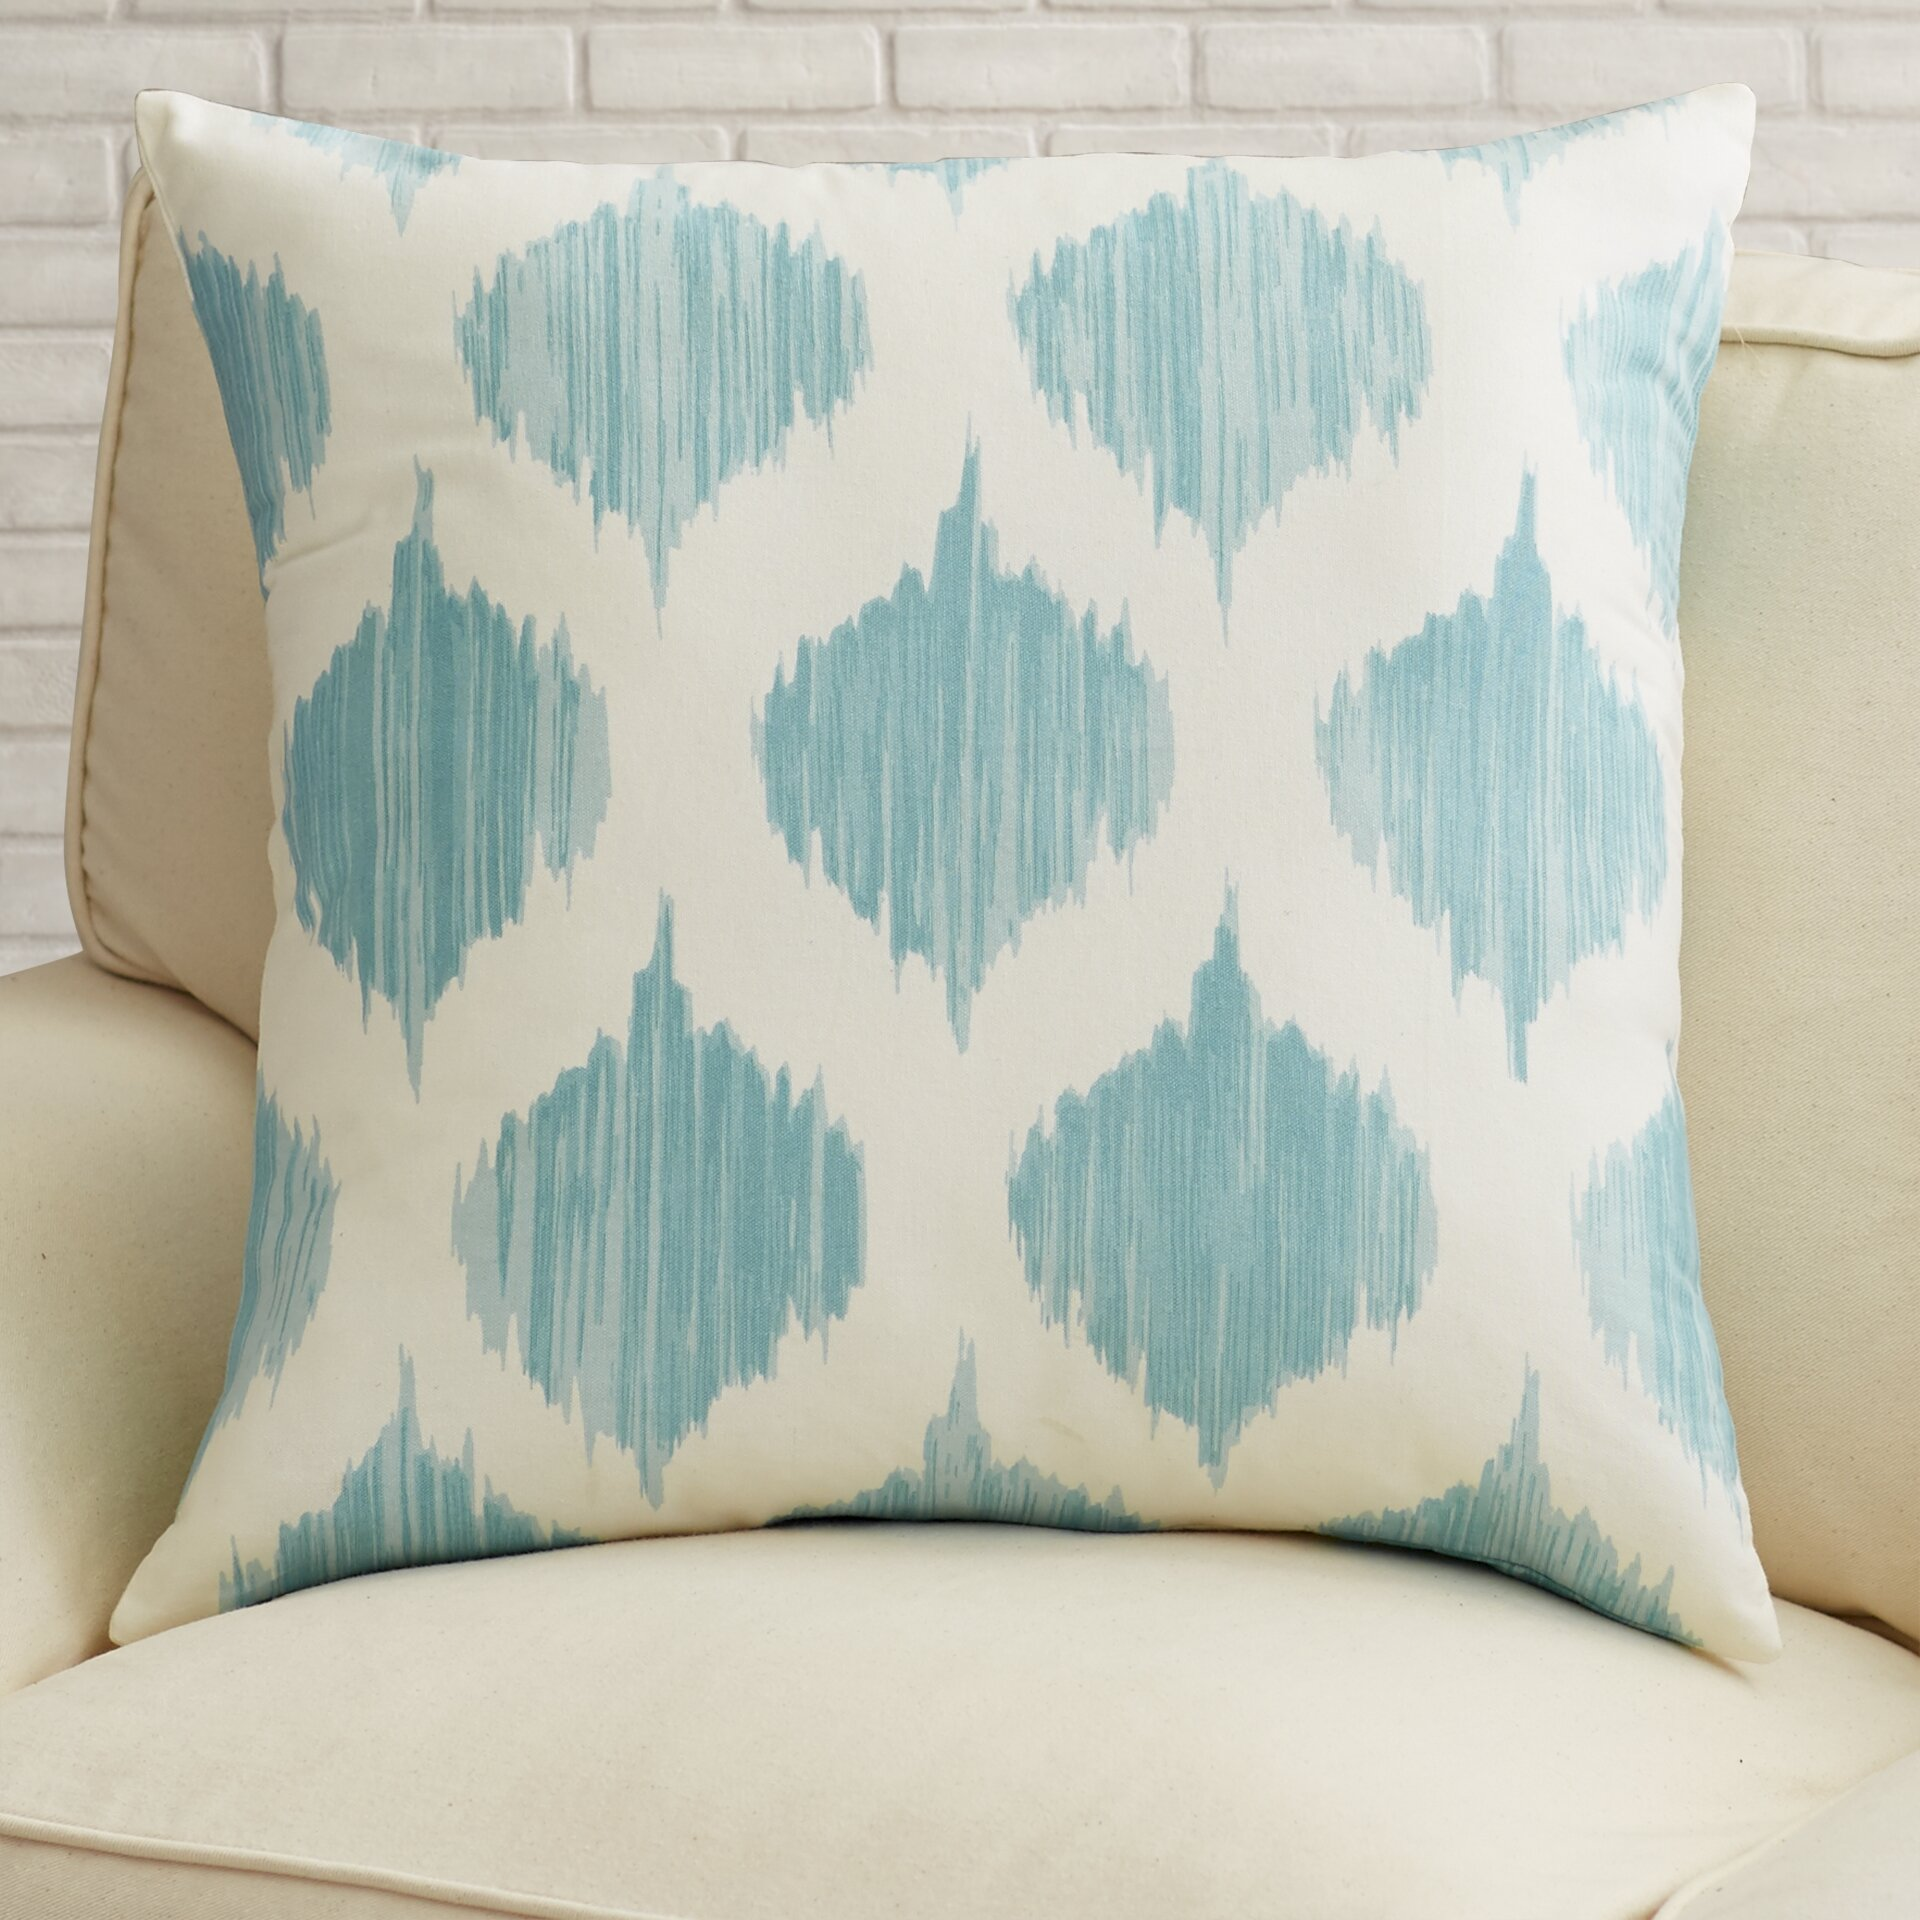 Wayfair Blue Decorative Pillows : Varick Gallery Aguilar Cotton Throw Pillow & Reviews Wayfair.ca